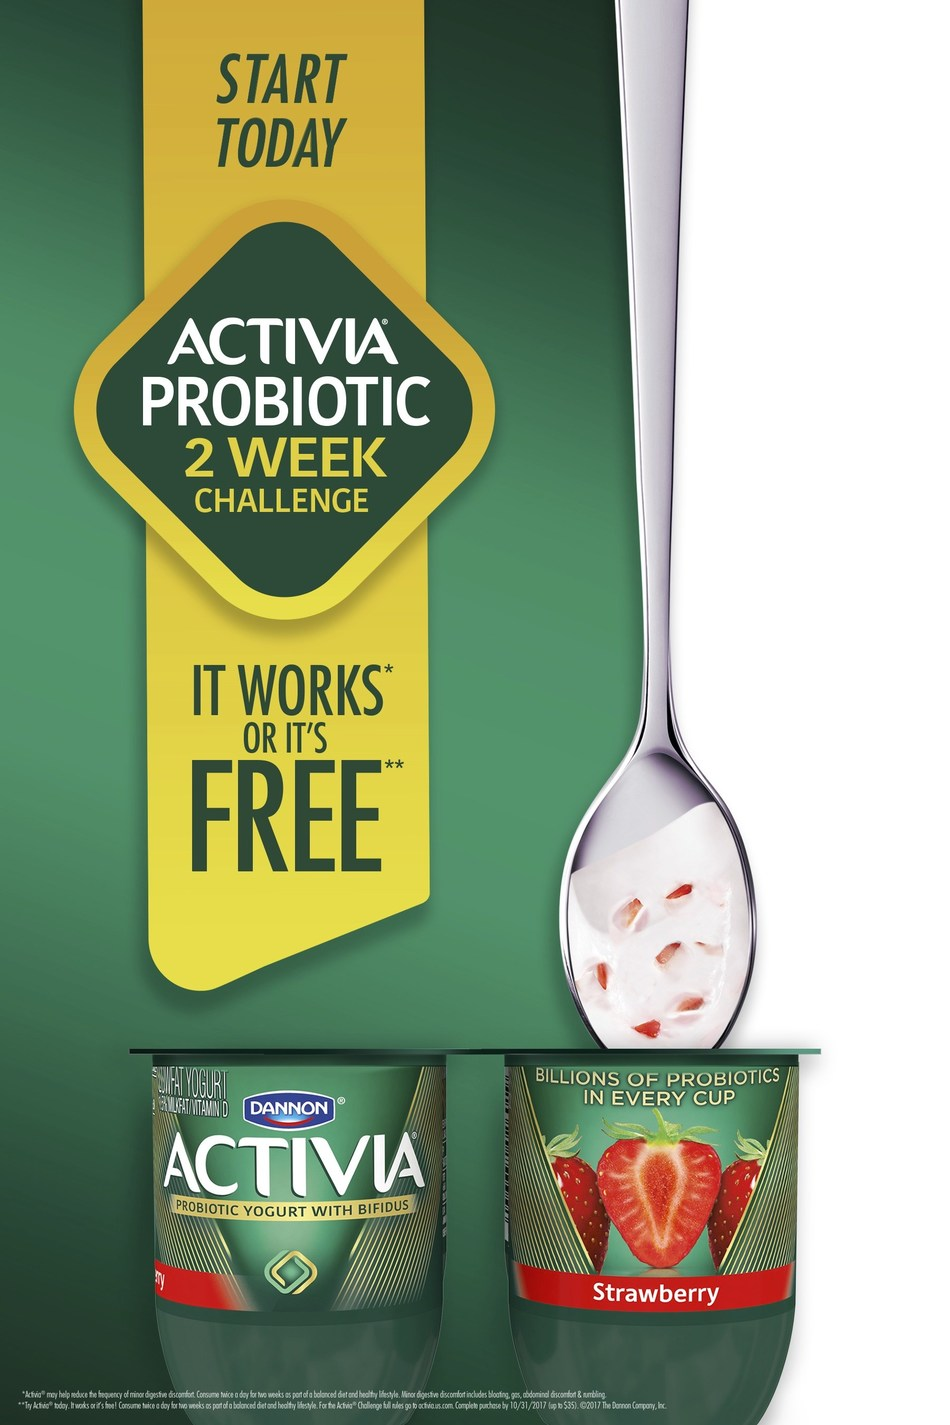 Activia launches the Probiotic Two Week Challenge to help people integrate probiotics into their daily routine.